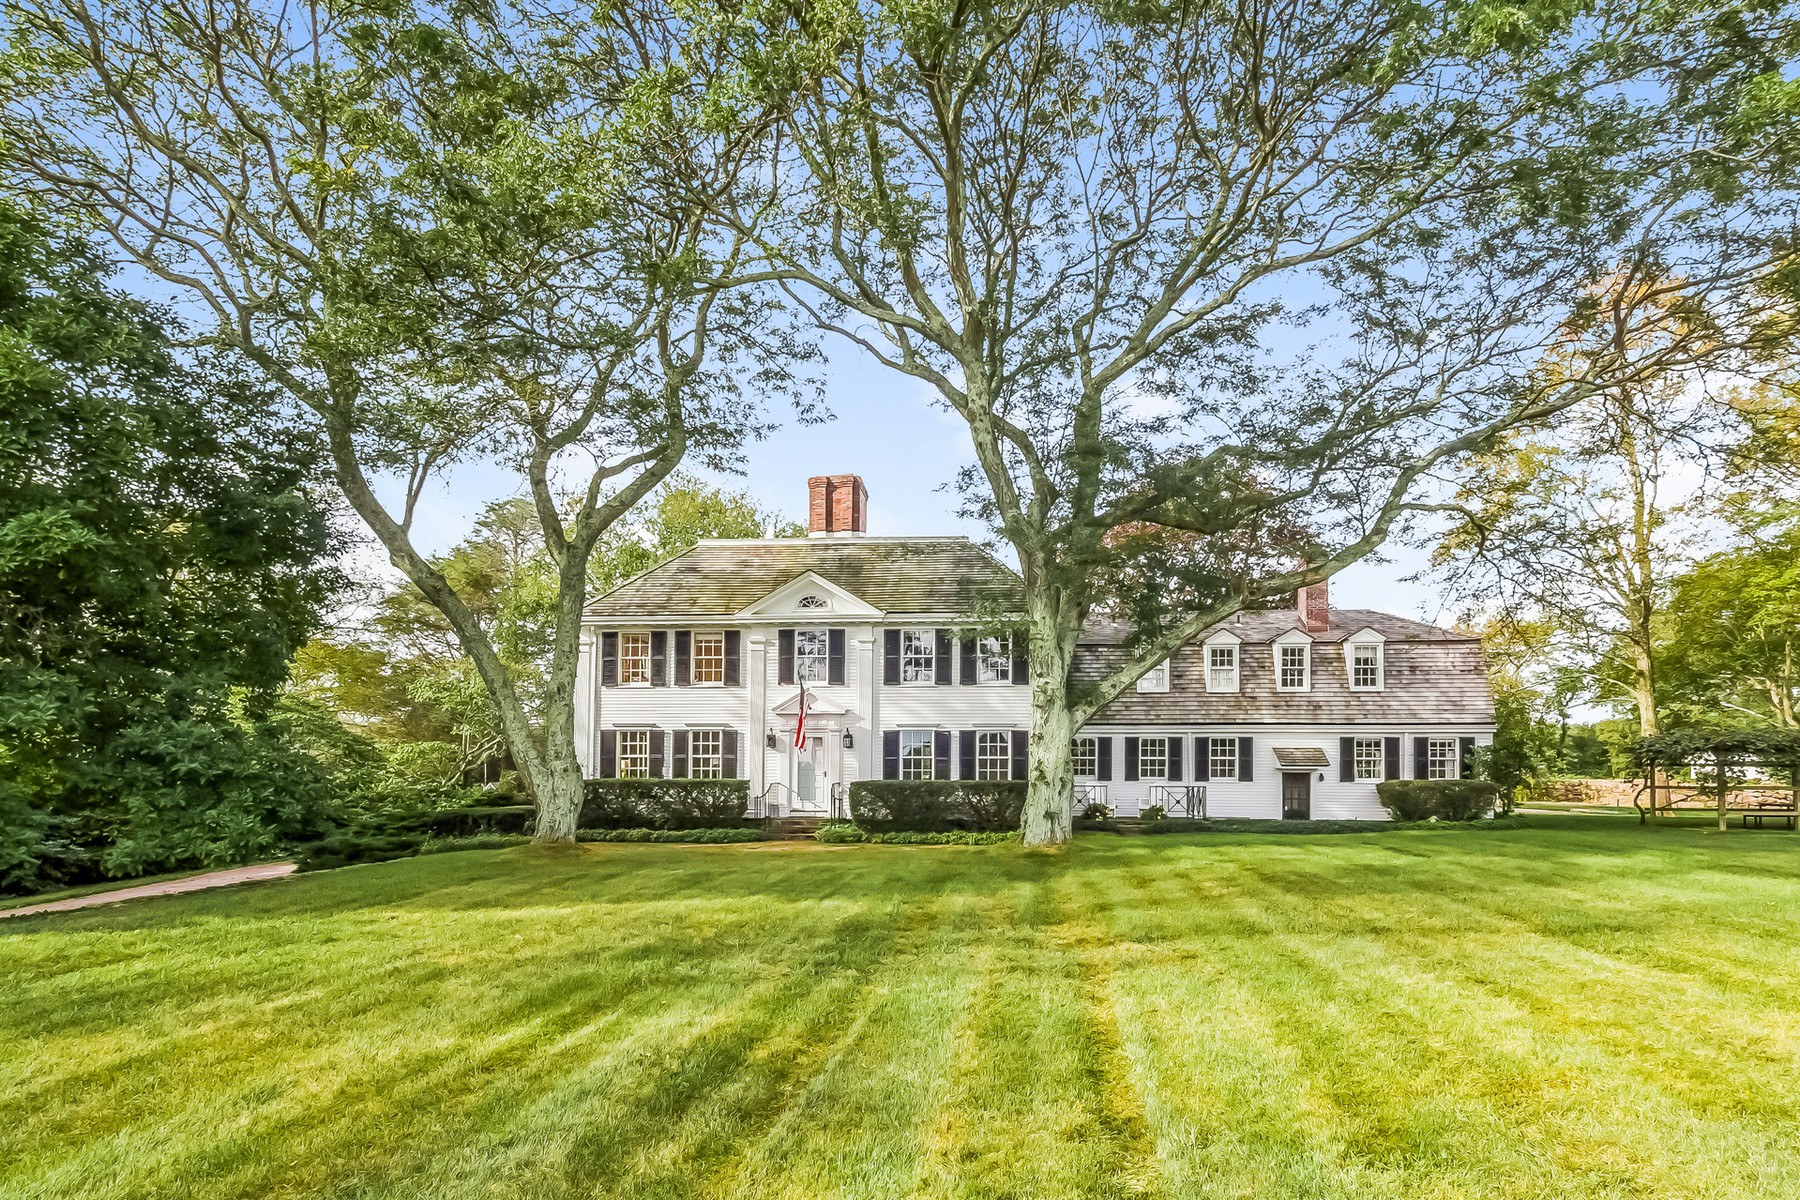 Single Family Home for Sale at Merry Meeting Farm 264 Taugwonk Road Stonington, 06378 United States